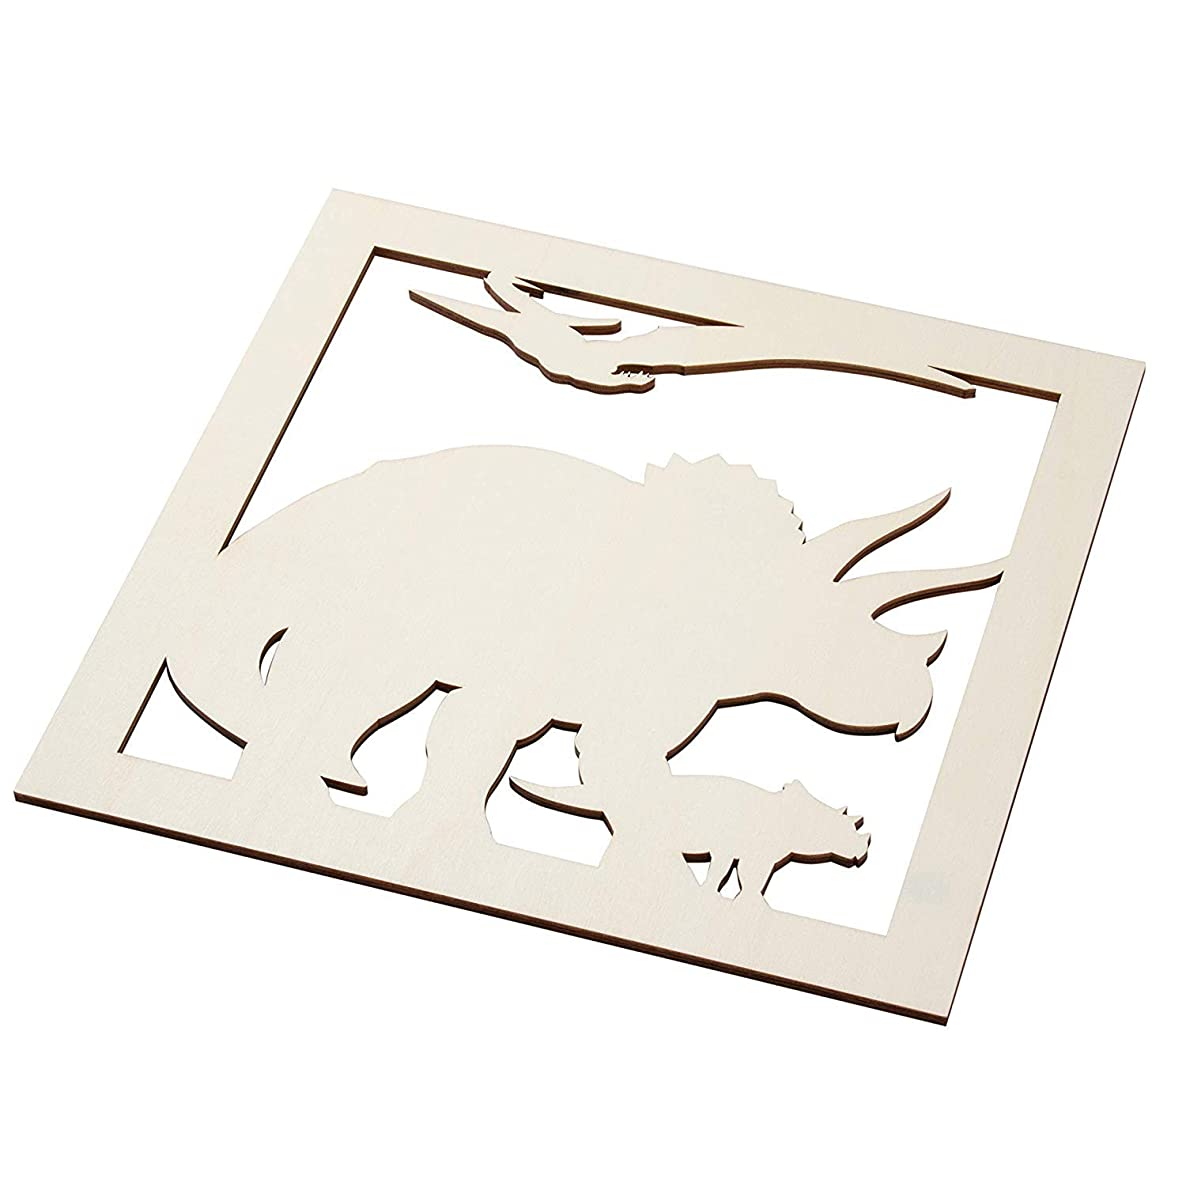 Genie Crafts 2-Piece Unfinished Wooden Triceratops Dinosaur Cutout, Wall Art Decor for Painting, DIY Wood Crafts, and Signs, 11.6 x 0.2 Inches